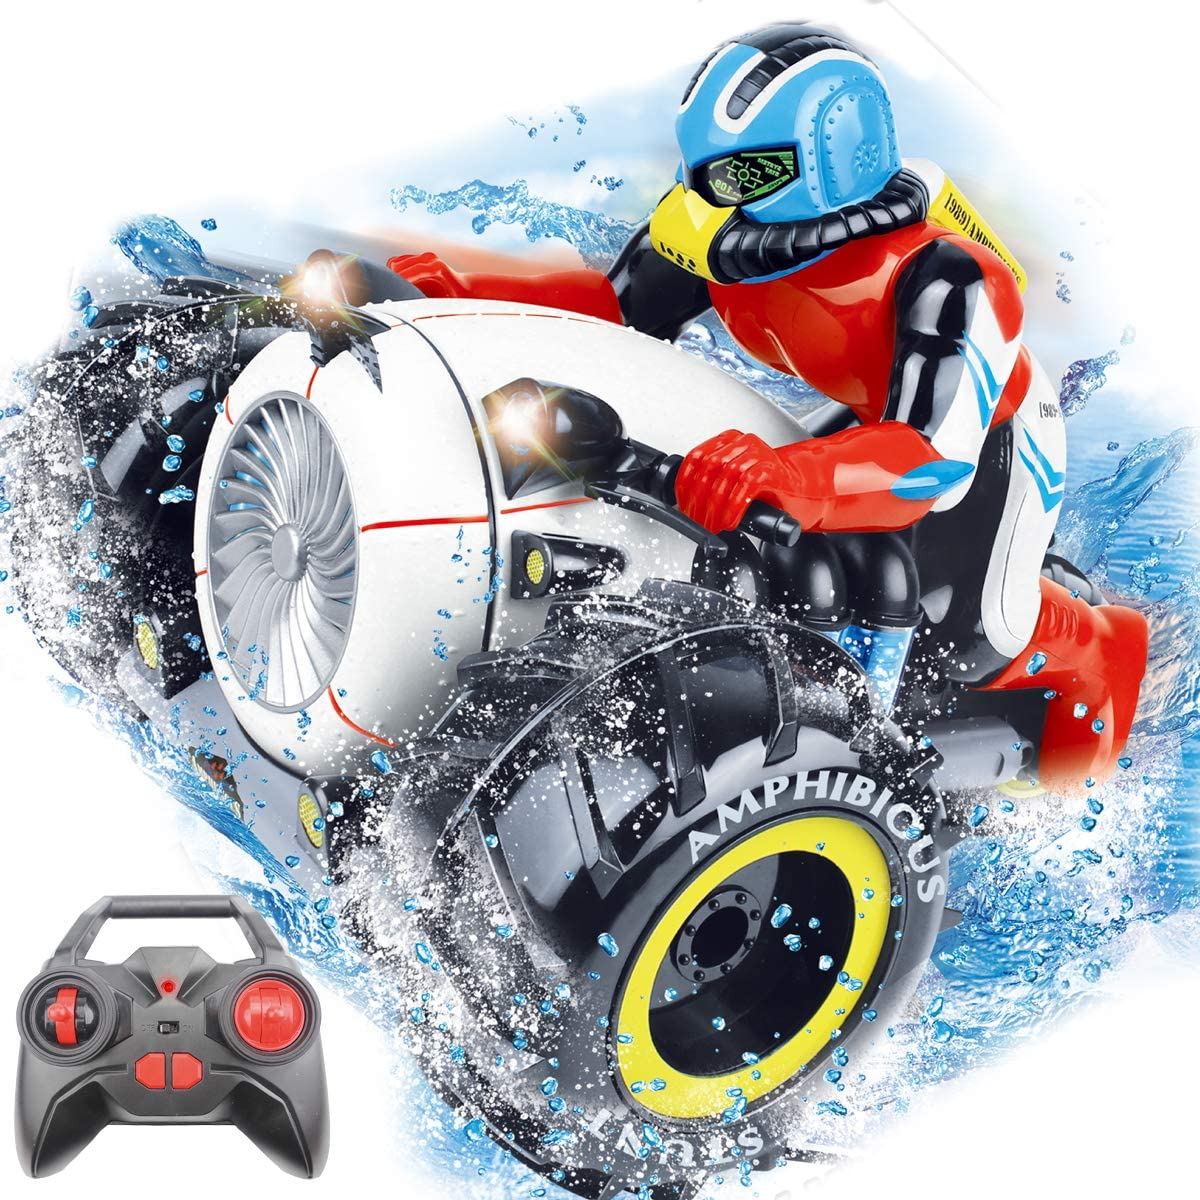 Top 10 Best Remote Control Motorcycles (2020 Reviews & Buying Guide) 8